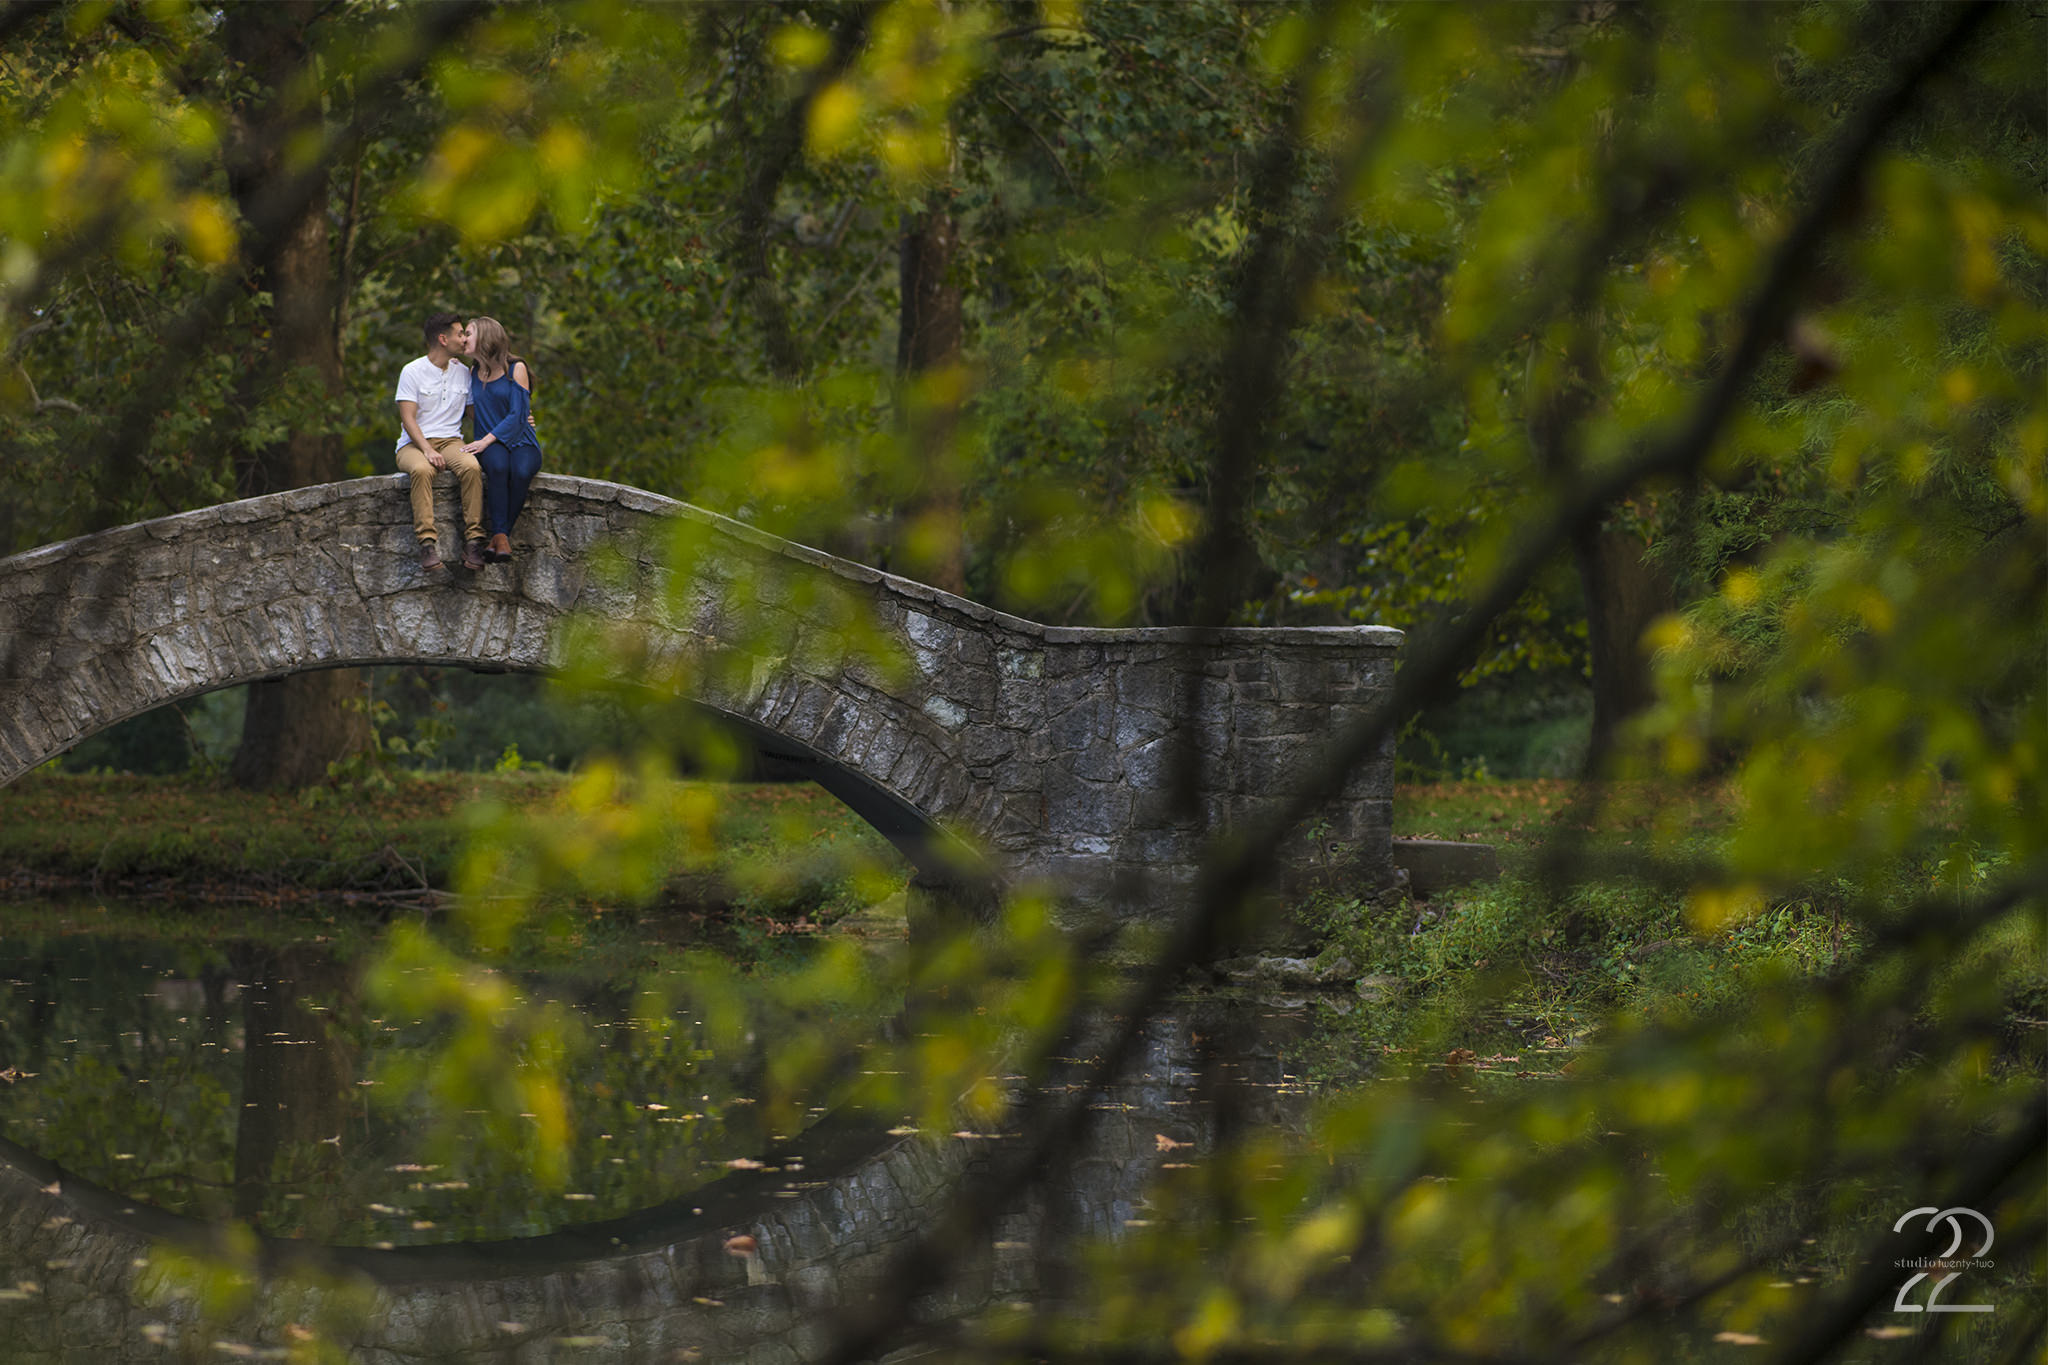 The stone arch bridges at Eastwood MetroPark are some of my favorite features at this Dayton engagement photo location, and it